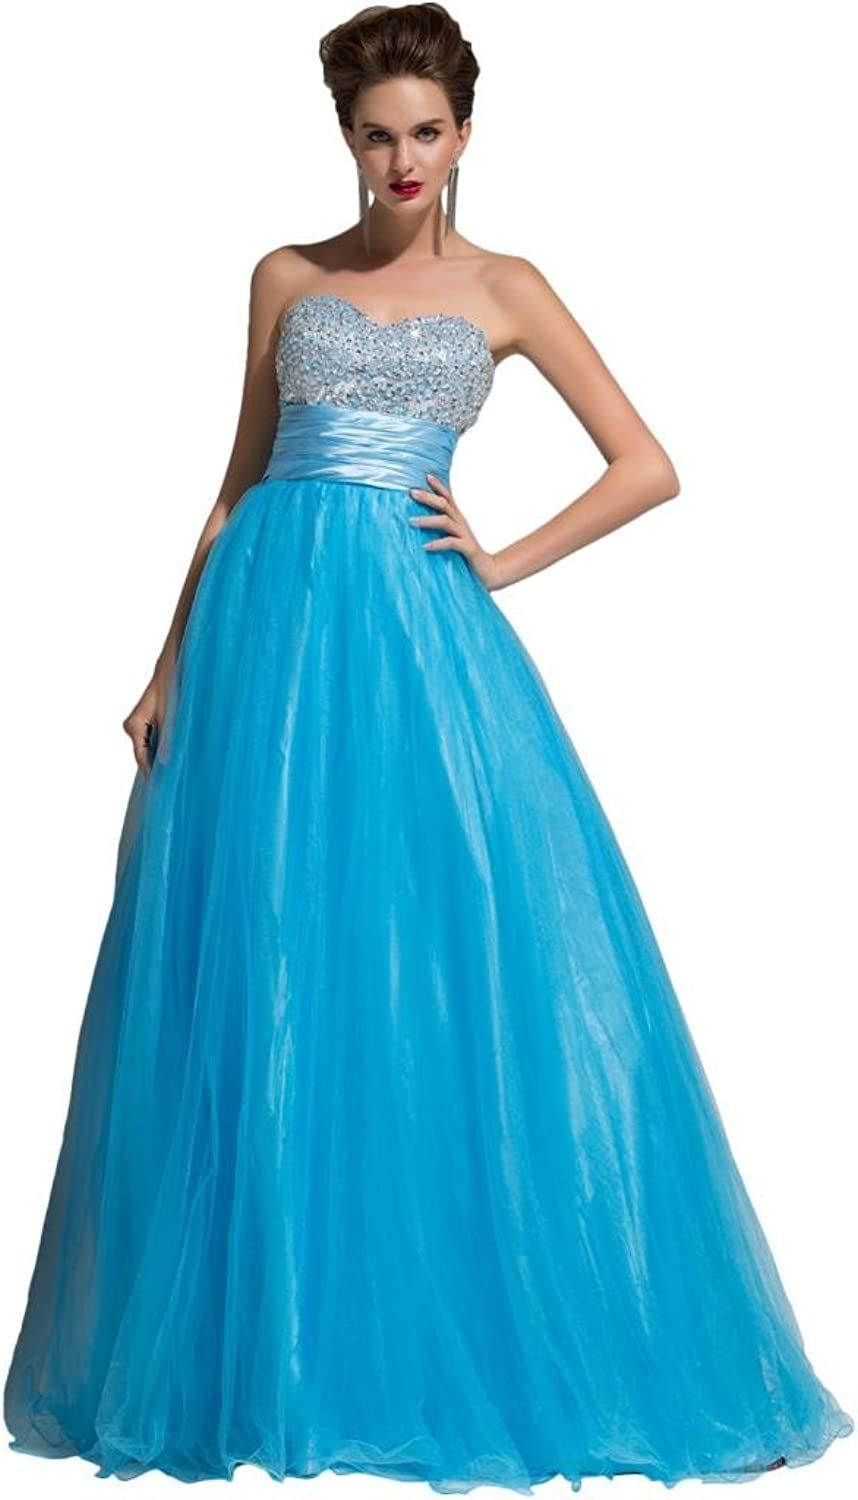 Angel Bride ALine Sweetheart Beaded Long Floor Length Prom Gowns with Shawl